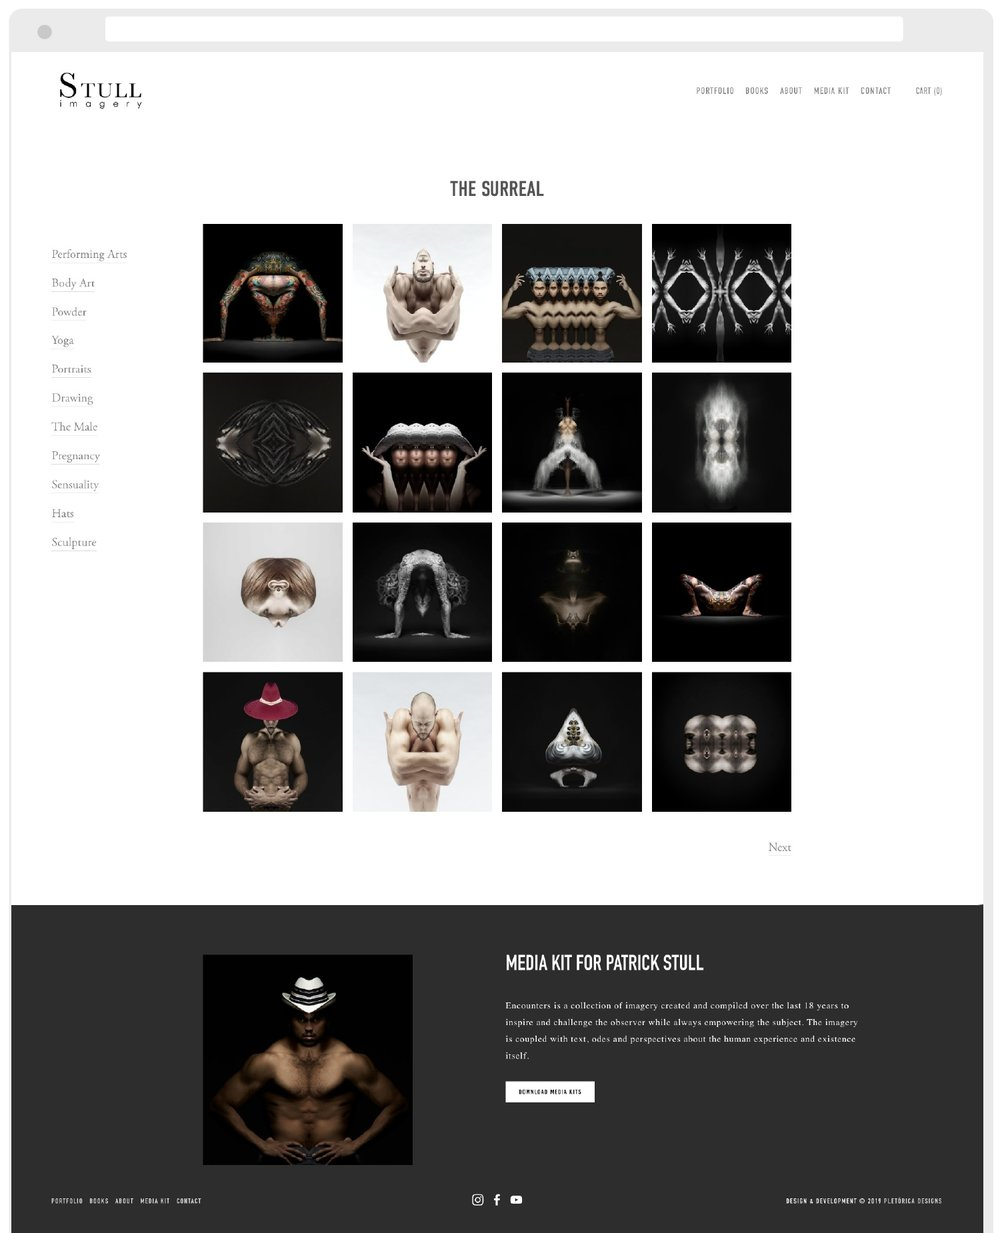 Patrick Stull Imagery Squarespace Website by PLETÓRICA DESIGNS